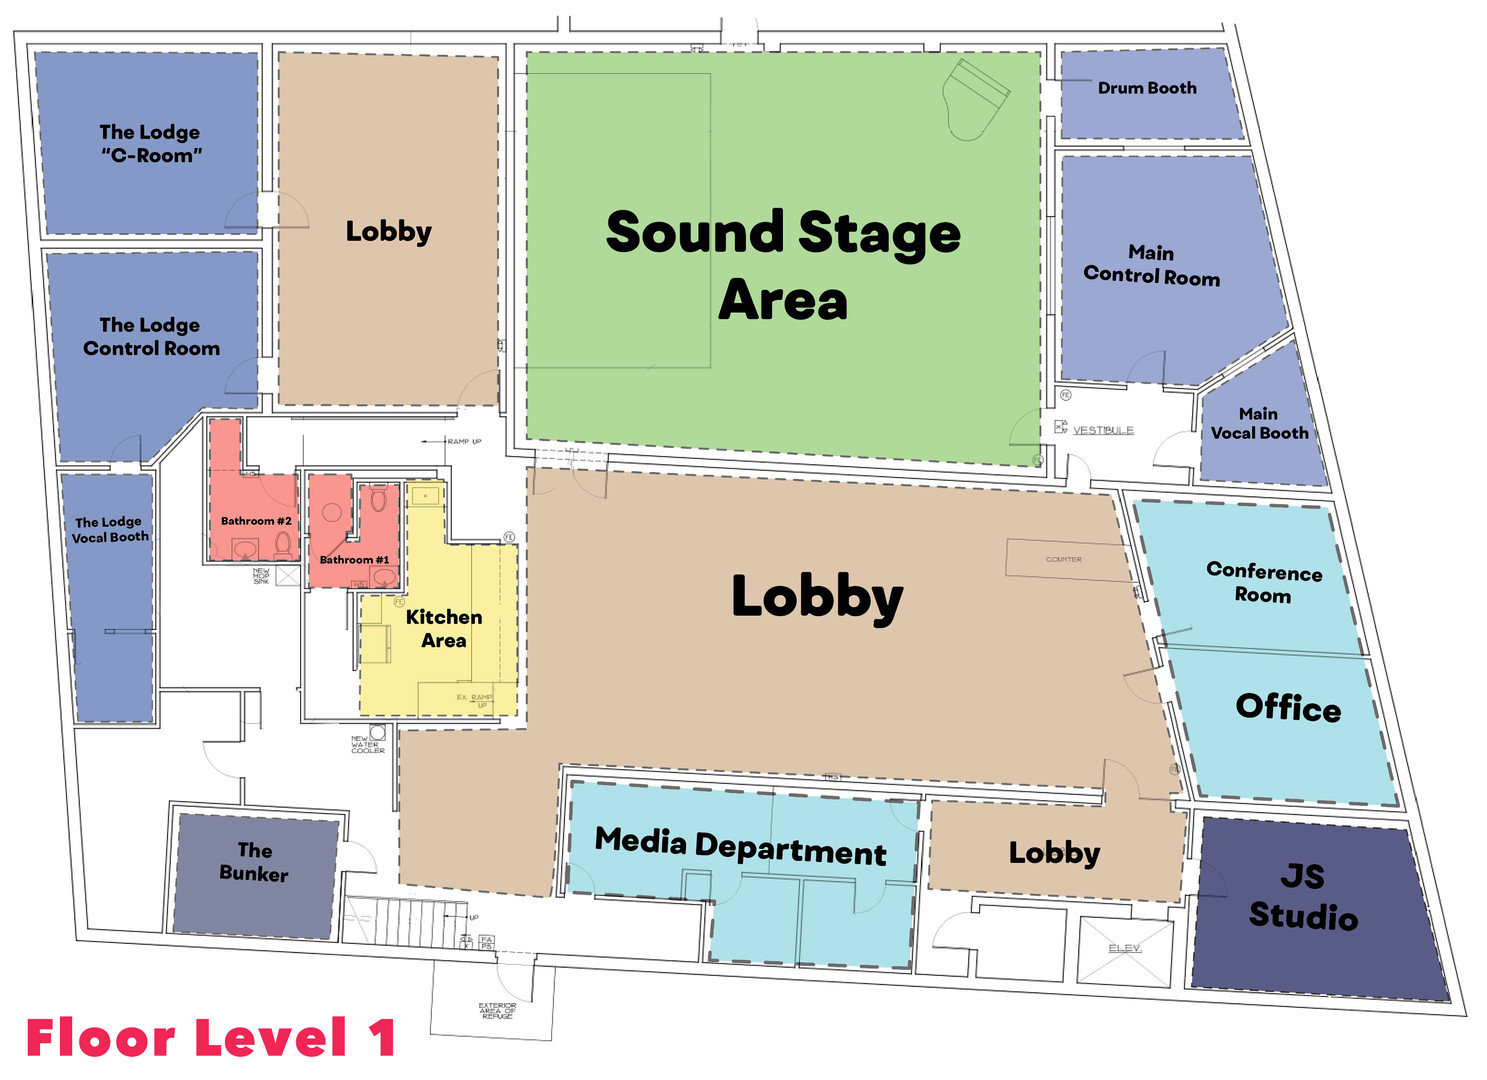 Floor-level-1-map.jpg